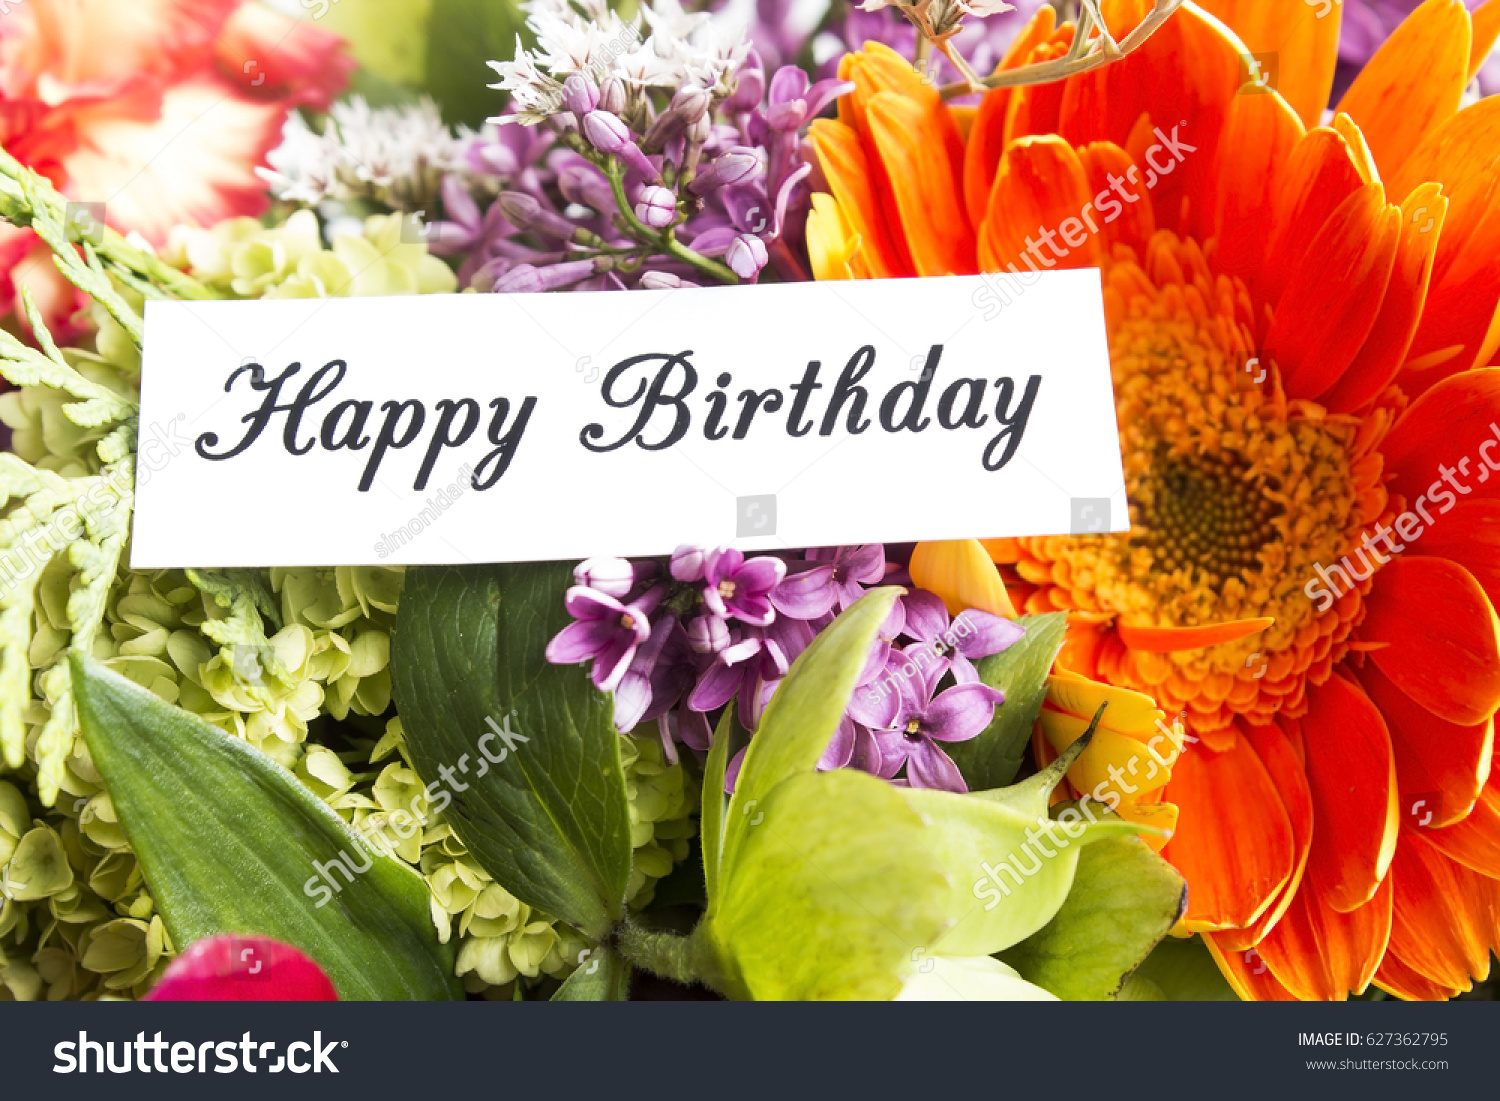 Happy Birthday Card Bouquet Spring Flowers Stock Photo (Royalty Free ...